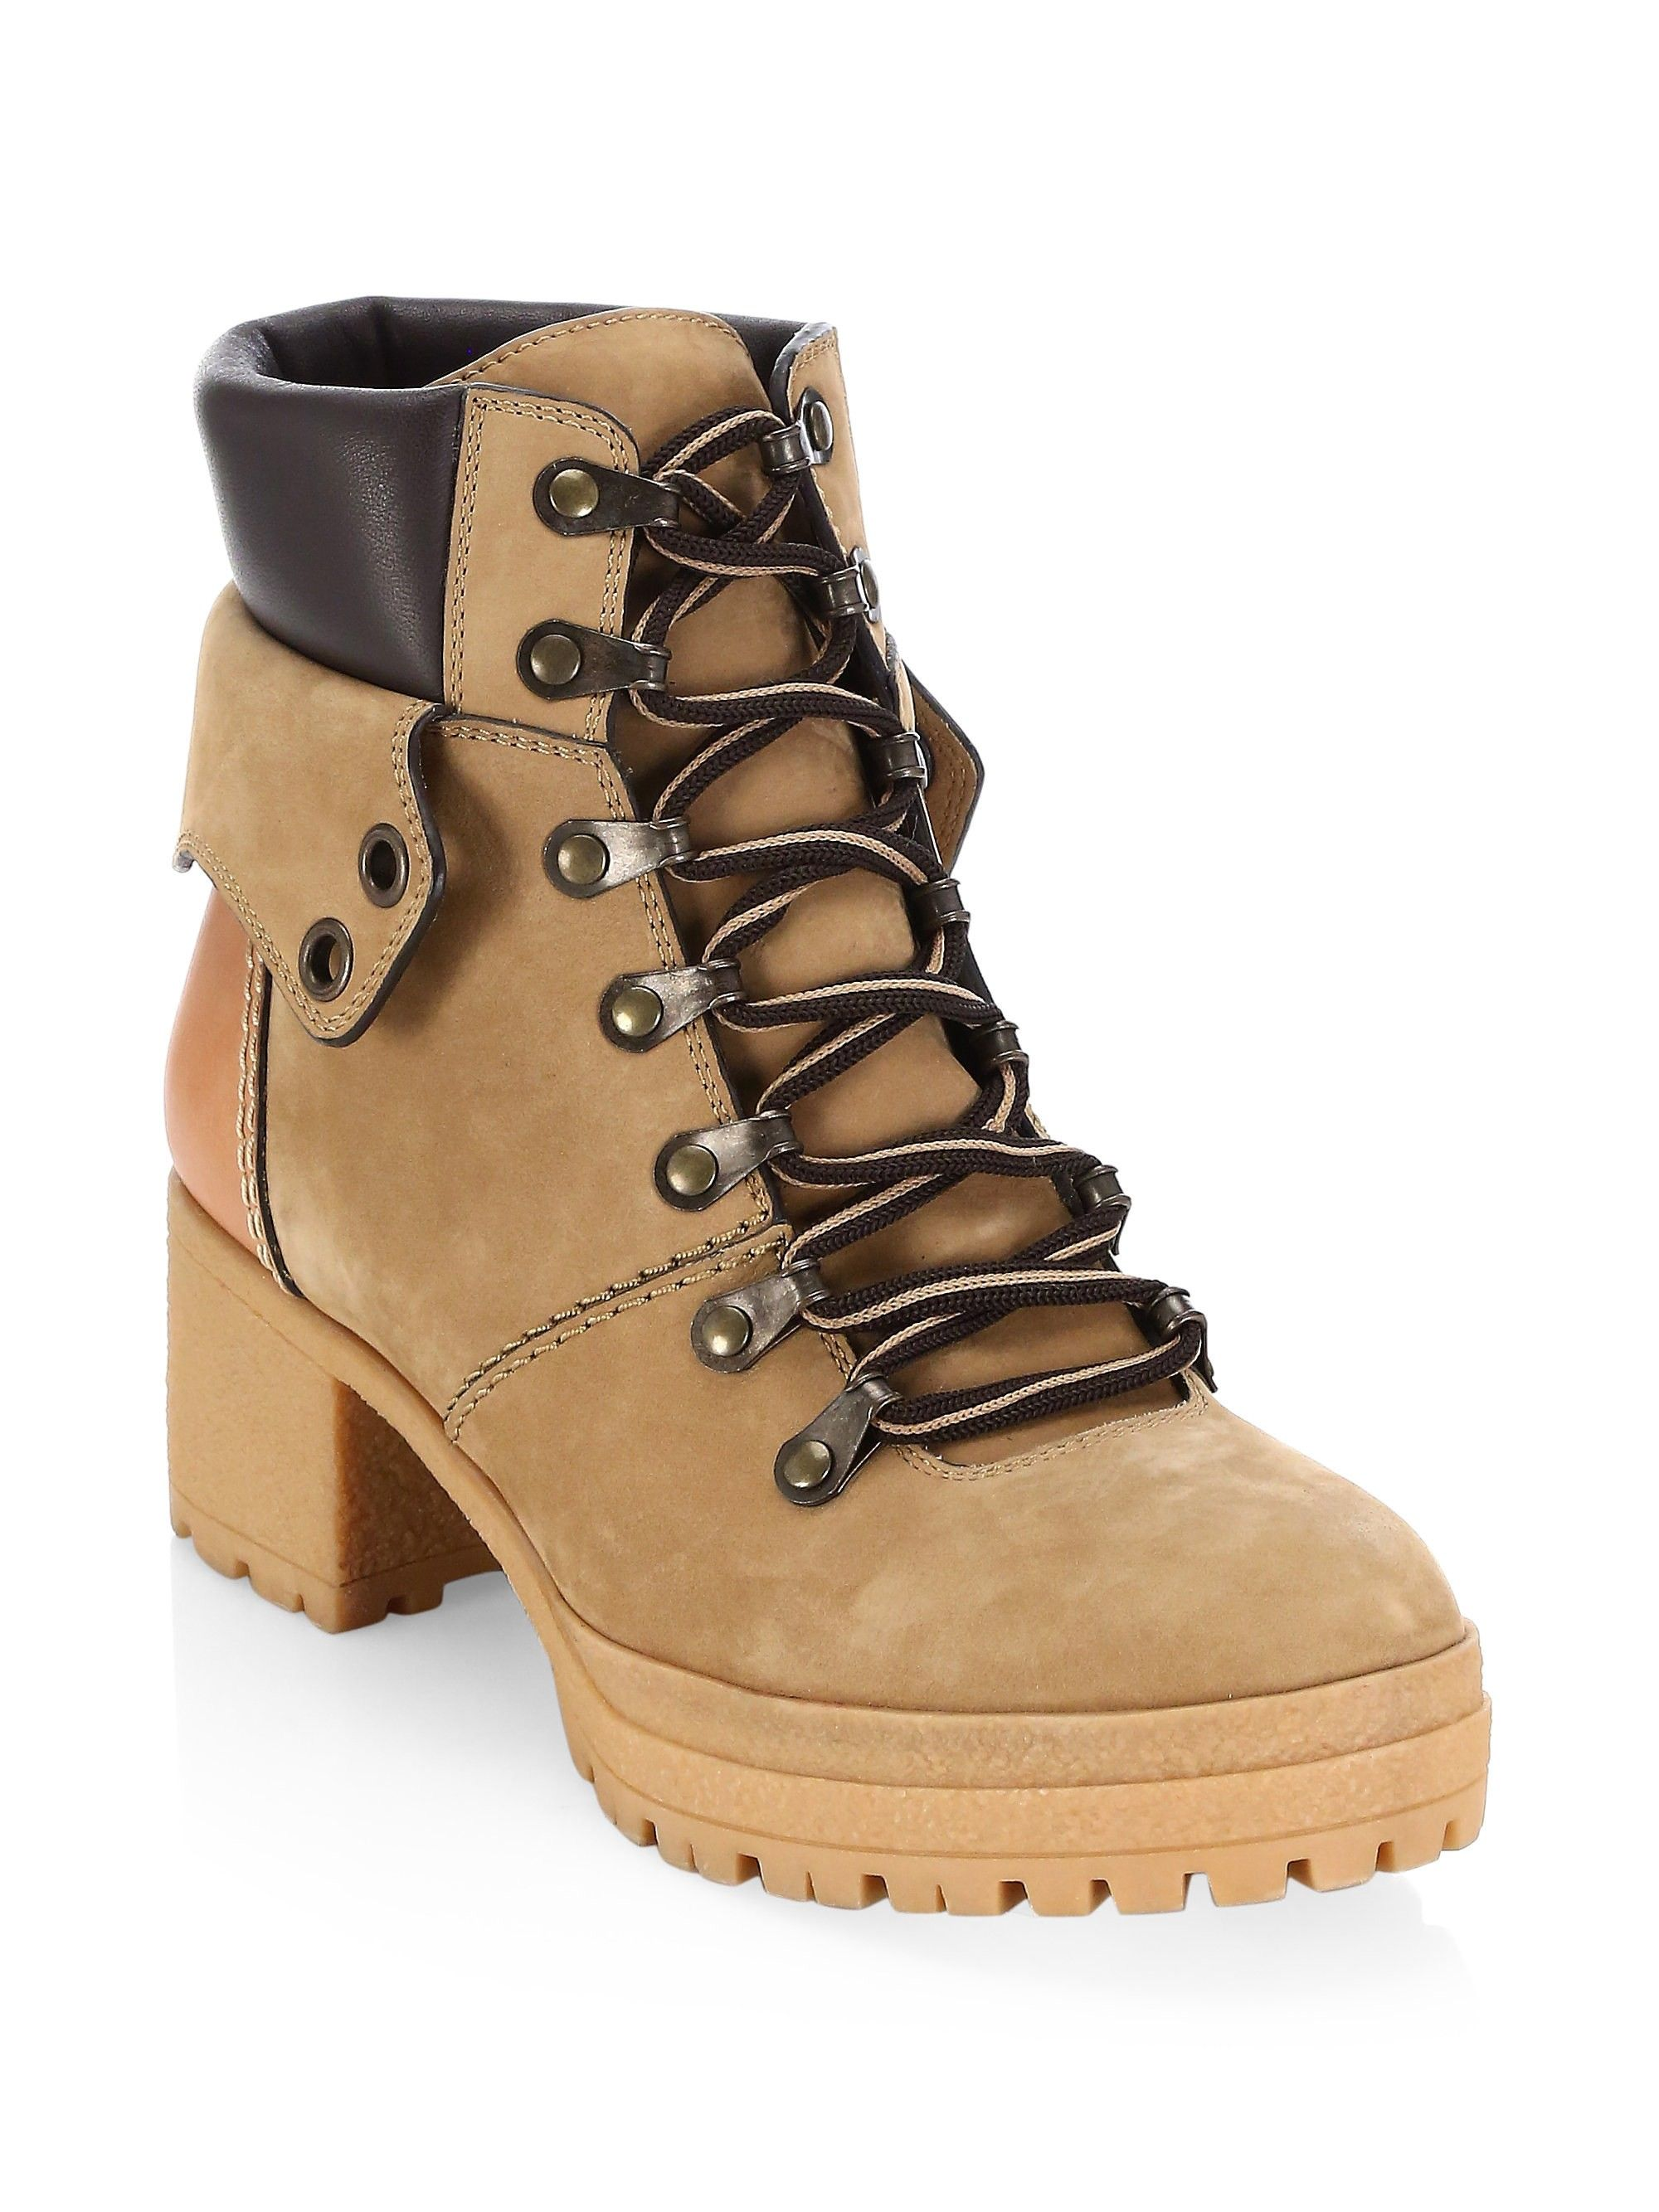 06ddd51dbf7 See By Chloé Eileen Platform Construction Boots - Tan 35 (5) in 2019 ...